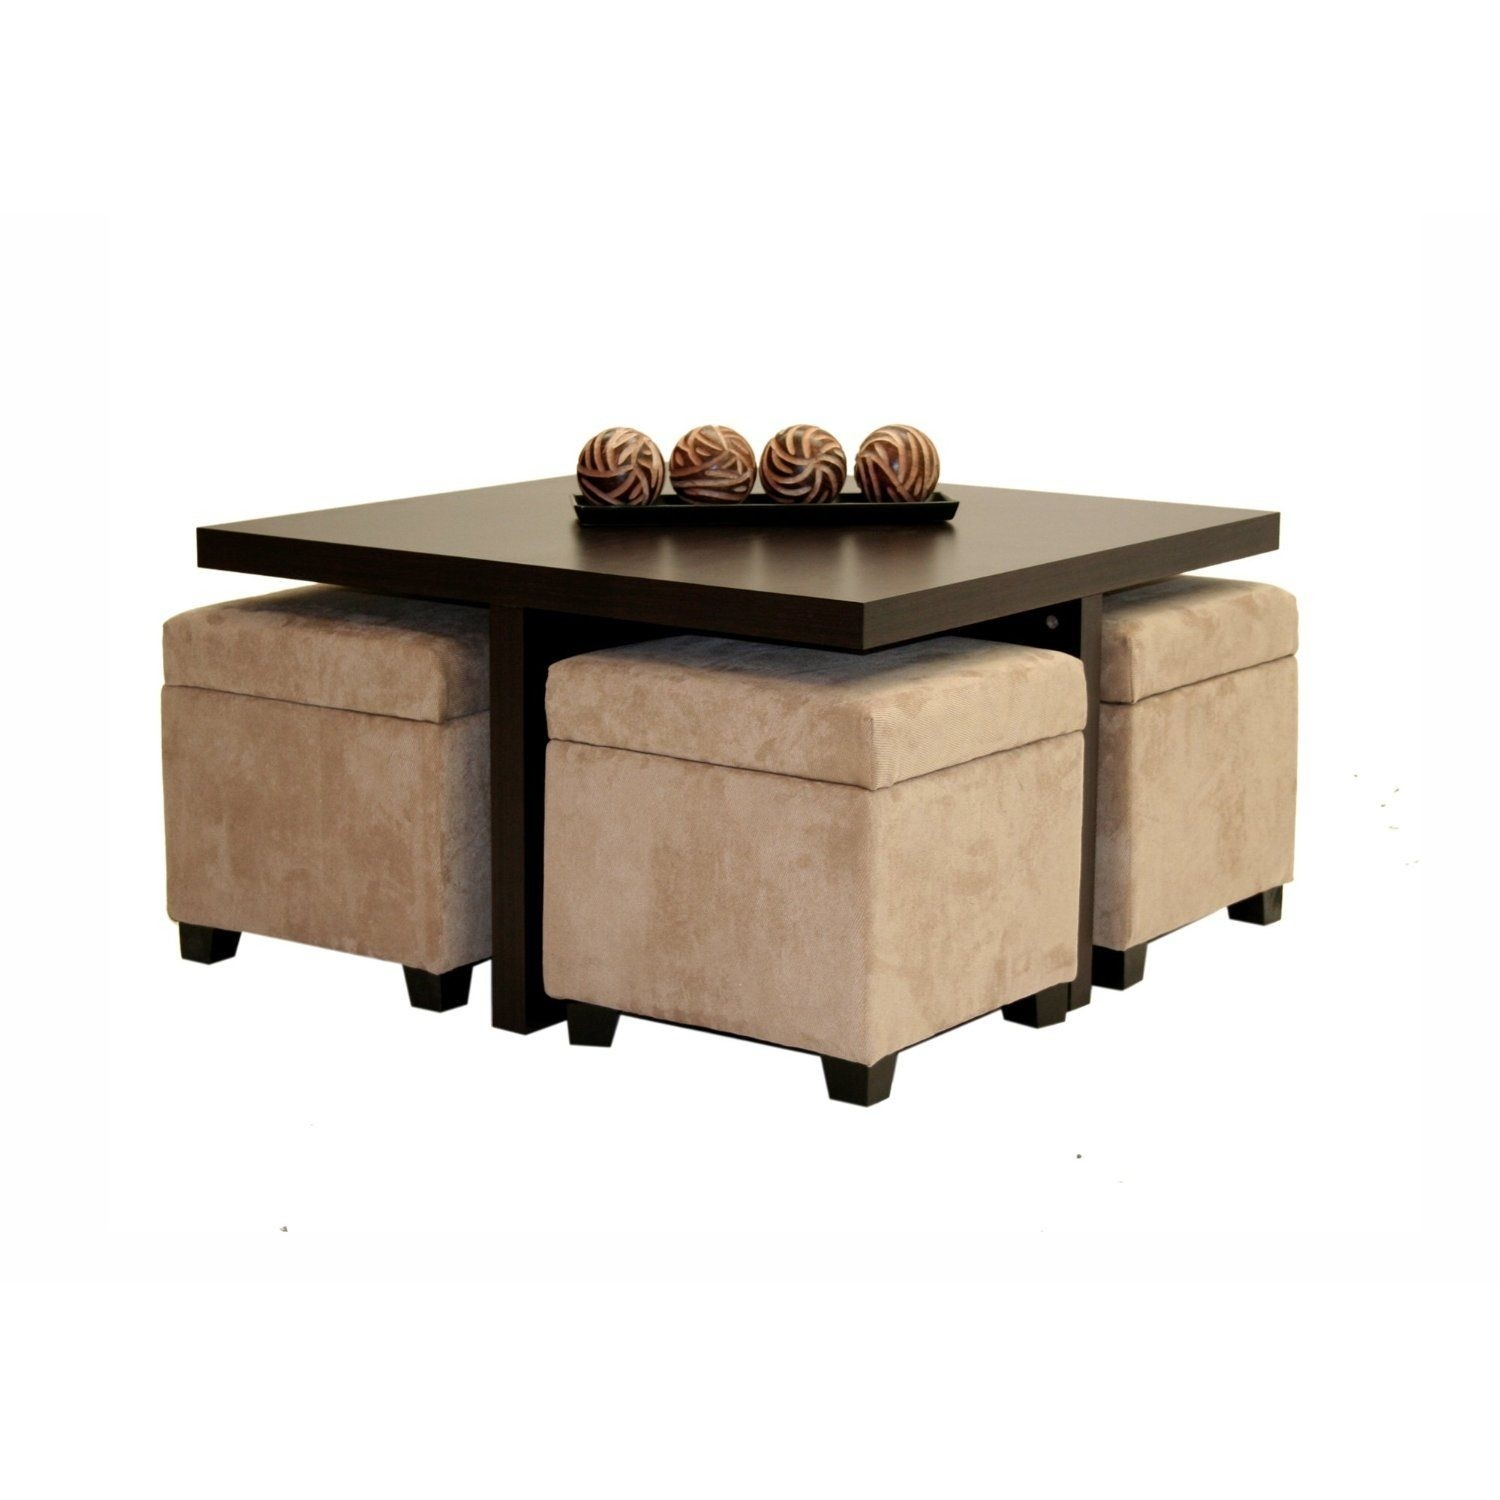 Club Coffee Table With 4 Storage Ottomans Chocolate And Beige